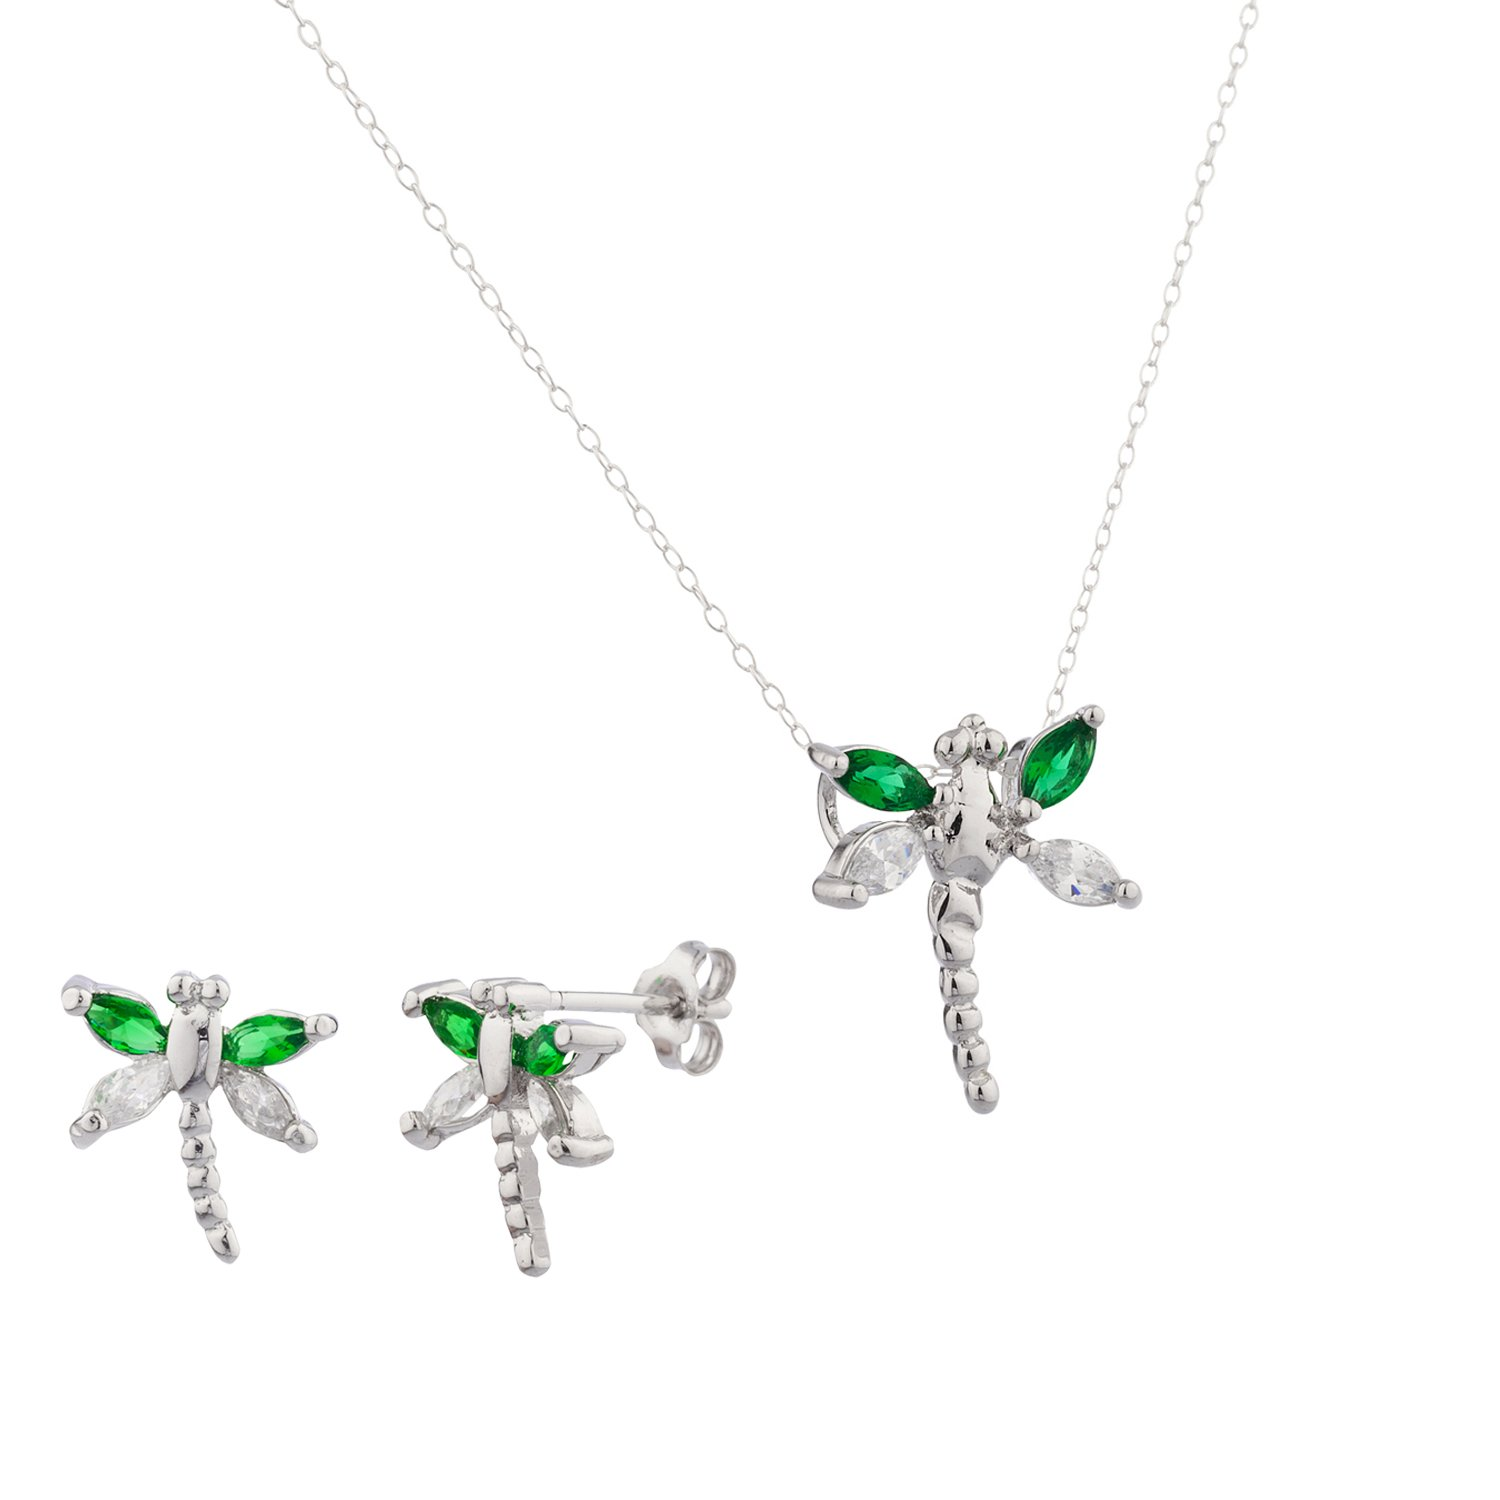 New 925 Sterling Silver Emerald Dragonfly Cz Stones Earrings & Matching Pendant w/ 18